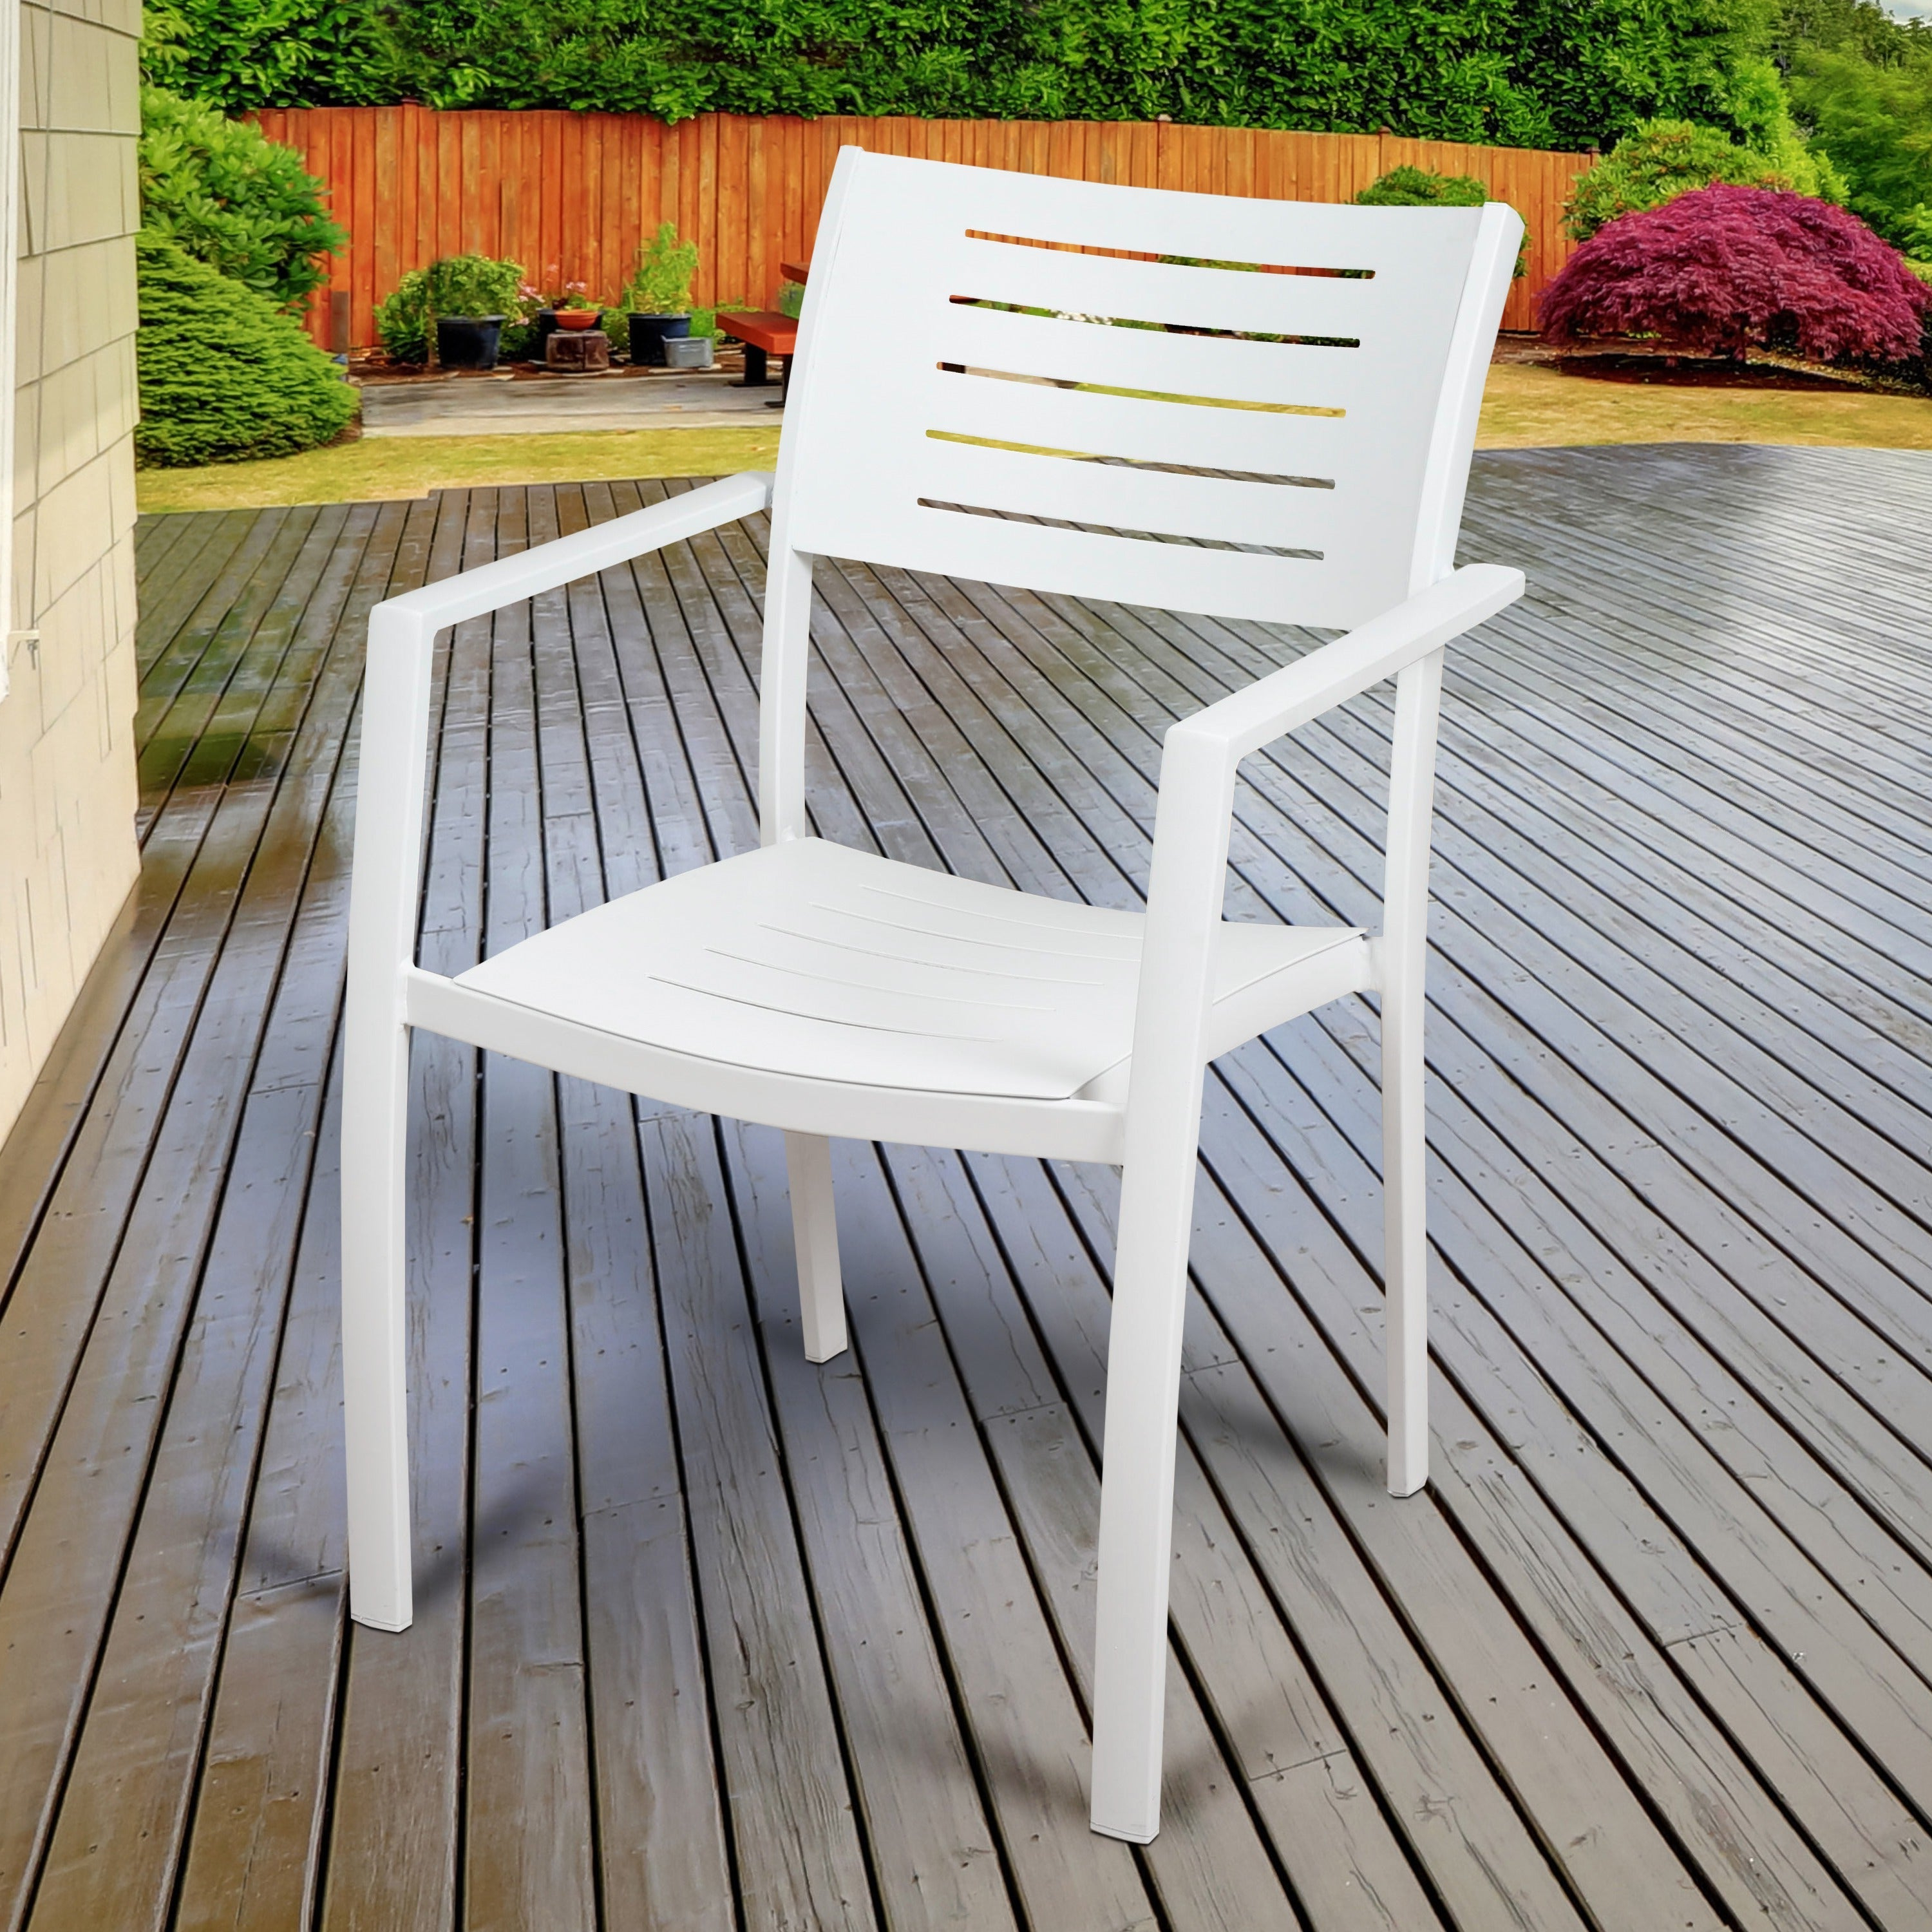 2020 John 4 Piece Dining Sets for Shop Havenside Home Mandalay 4-Piece Patio Dining Chairs, White - On